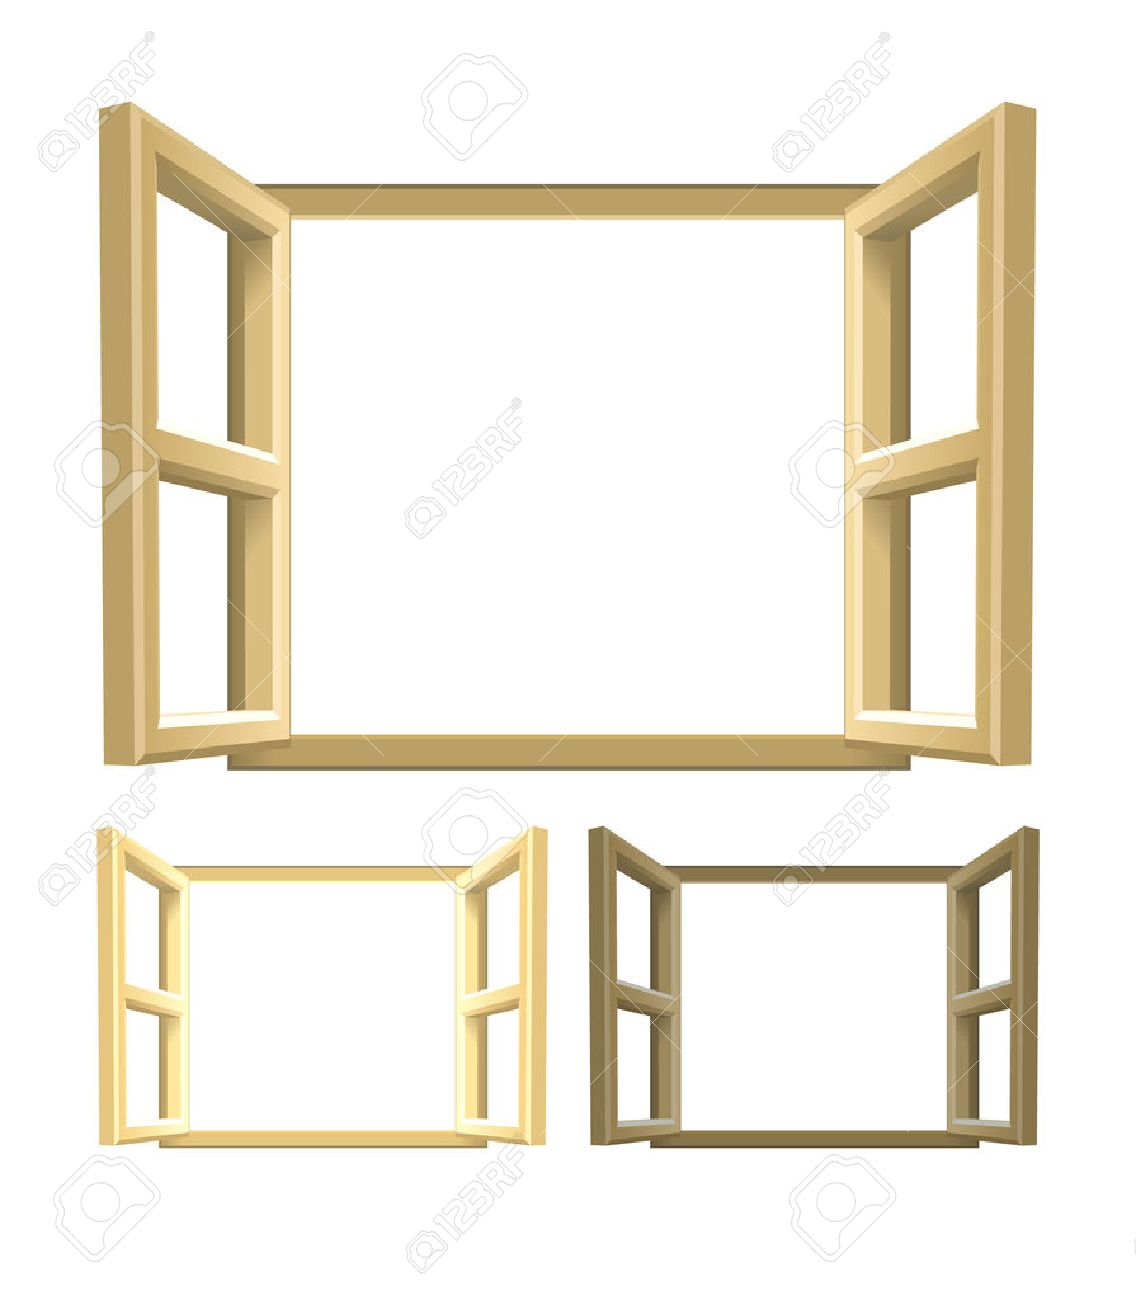 Wood frames set free vector - Open Wood Windows A Set Of Brown Wooden Windows Lighter And Darker Versions Included